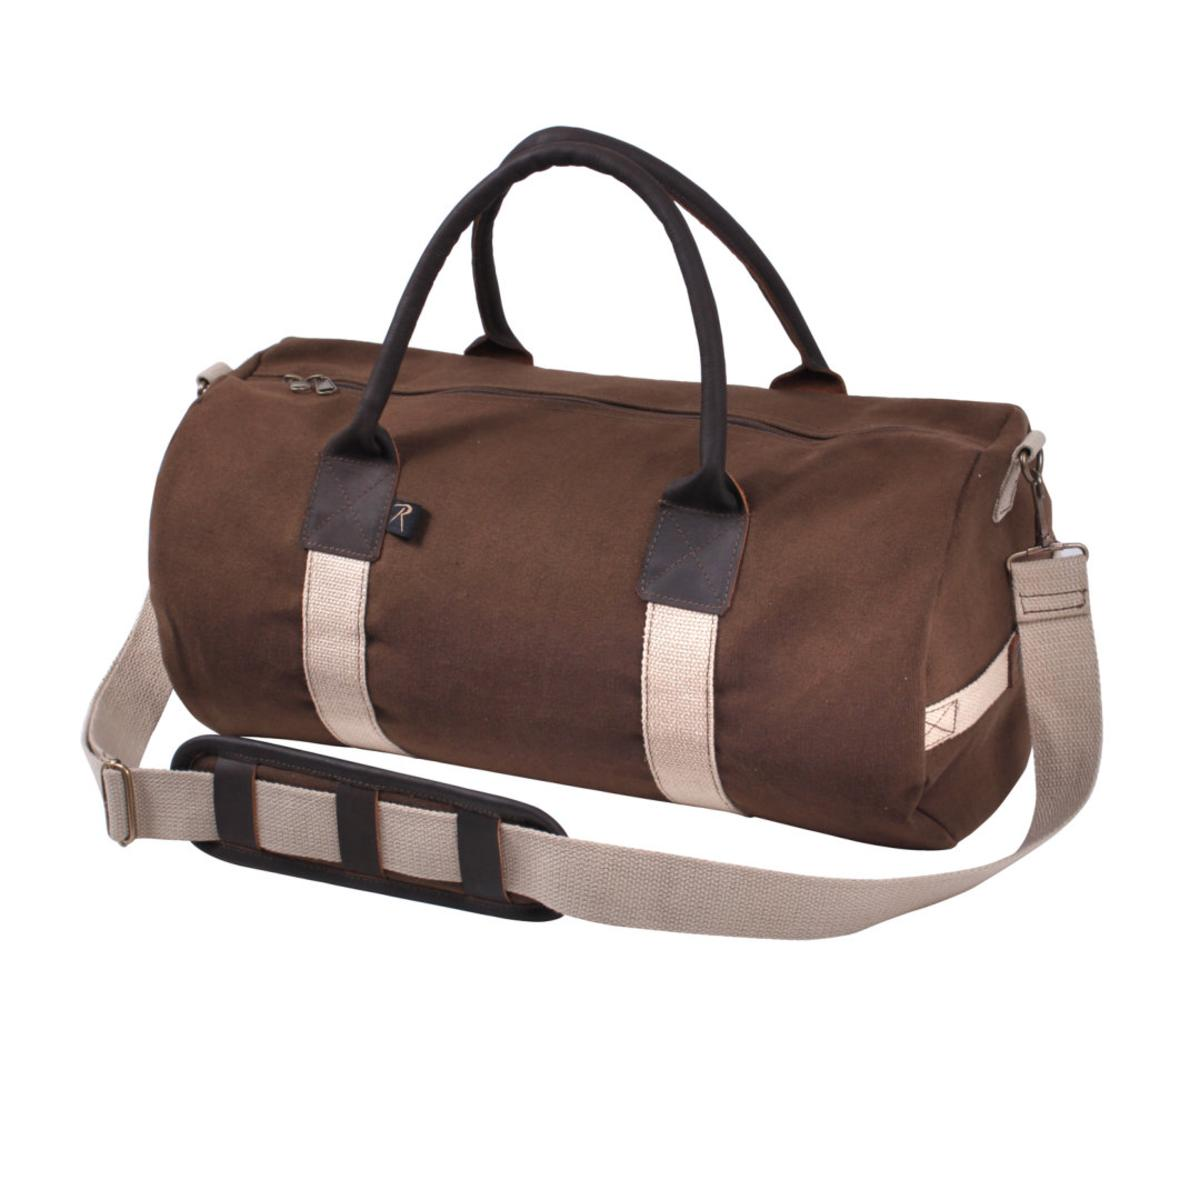 "Rothco 19"" Canvas & Leather Gym Bag, Sports Duffle Bag w Shoulder Strap by Rothco"